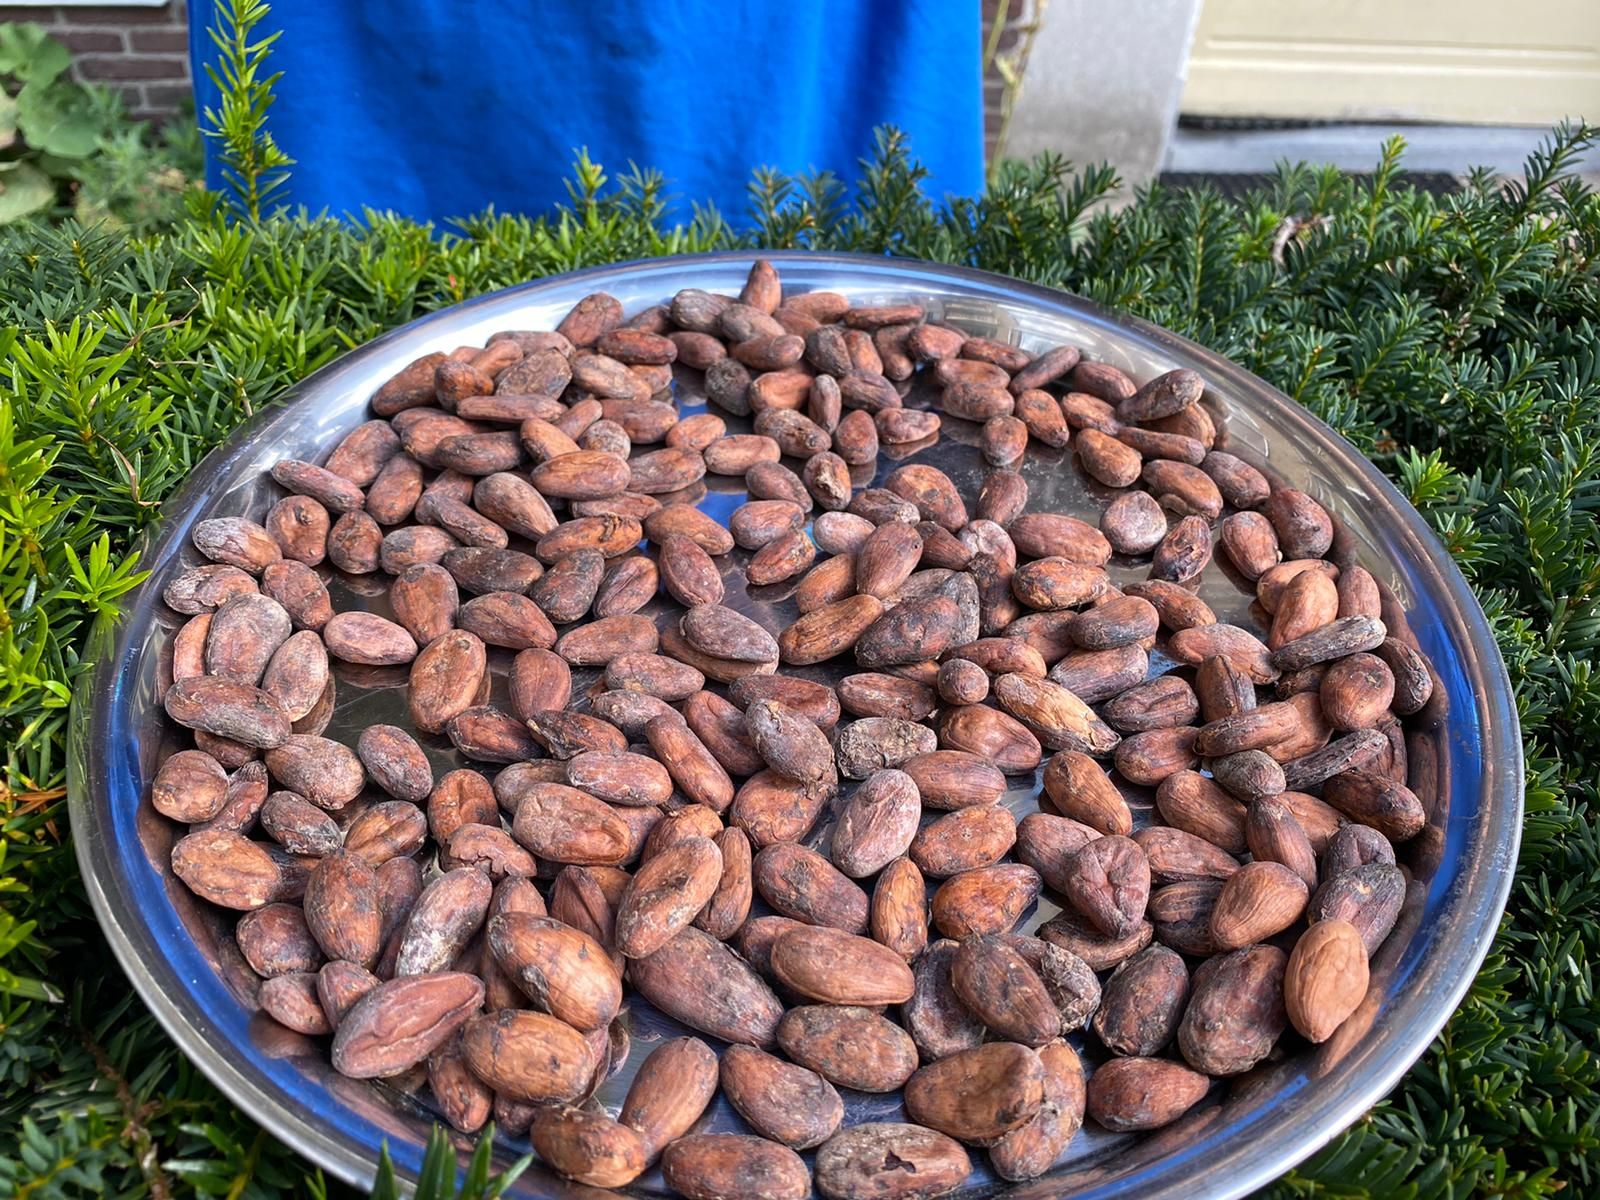 Cocoa beans Cameroon